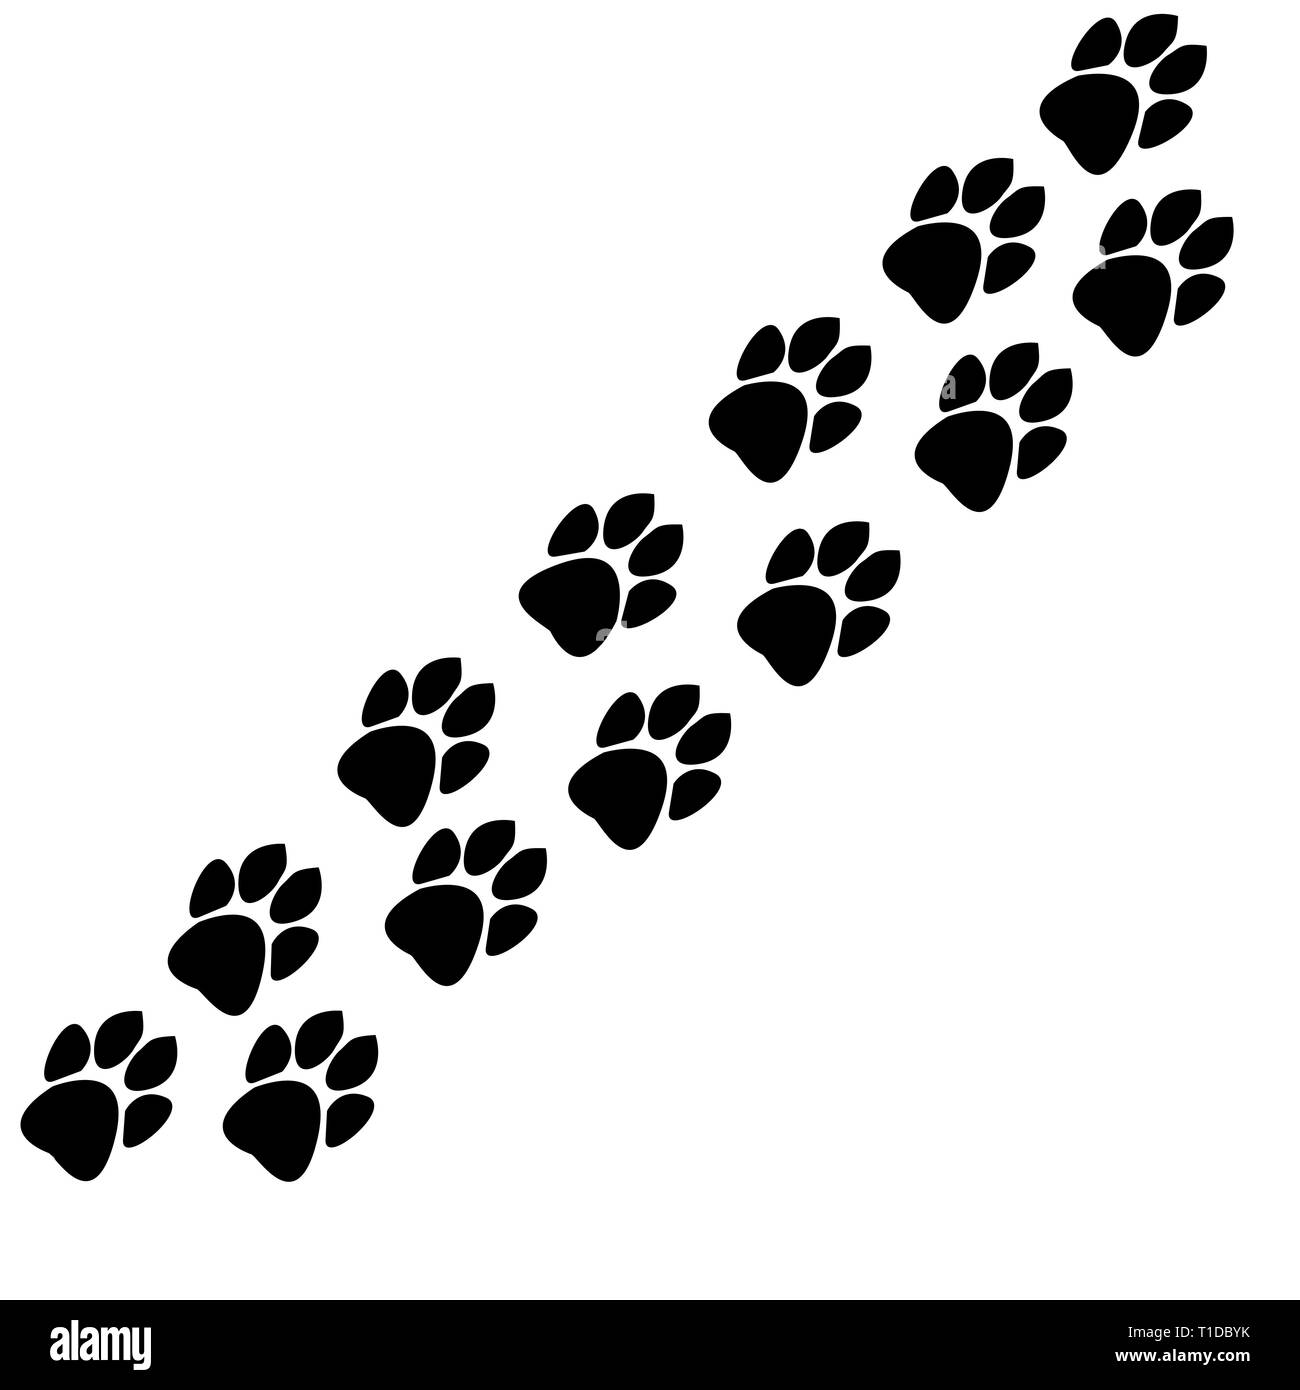 traces of animals track - Stock Image